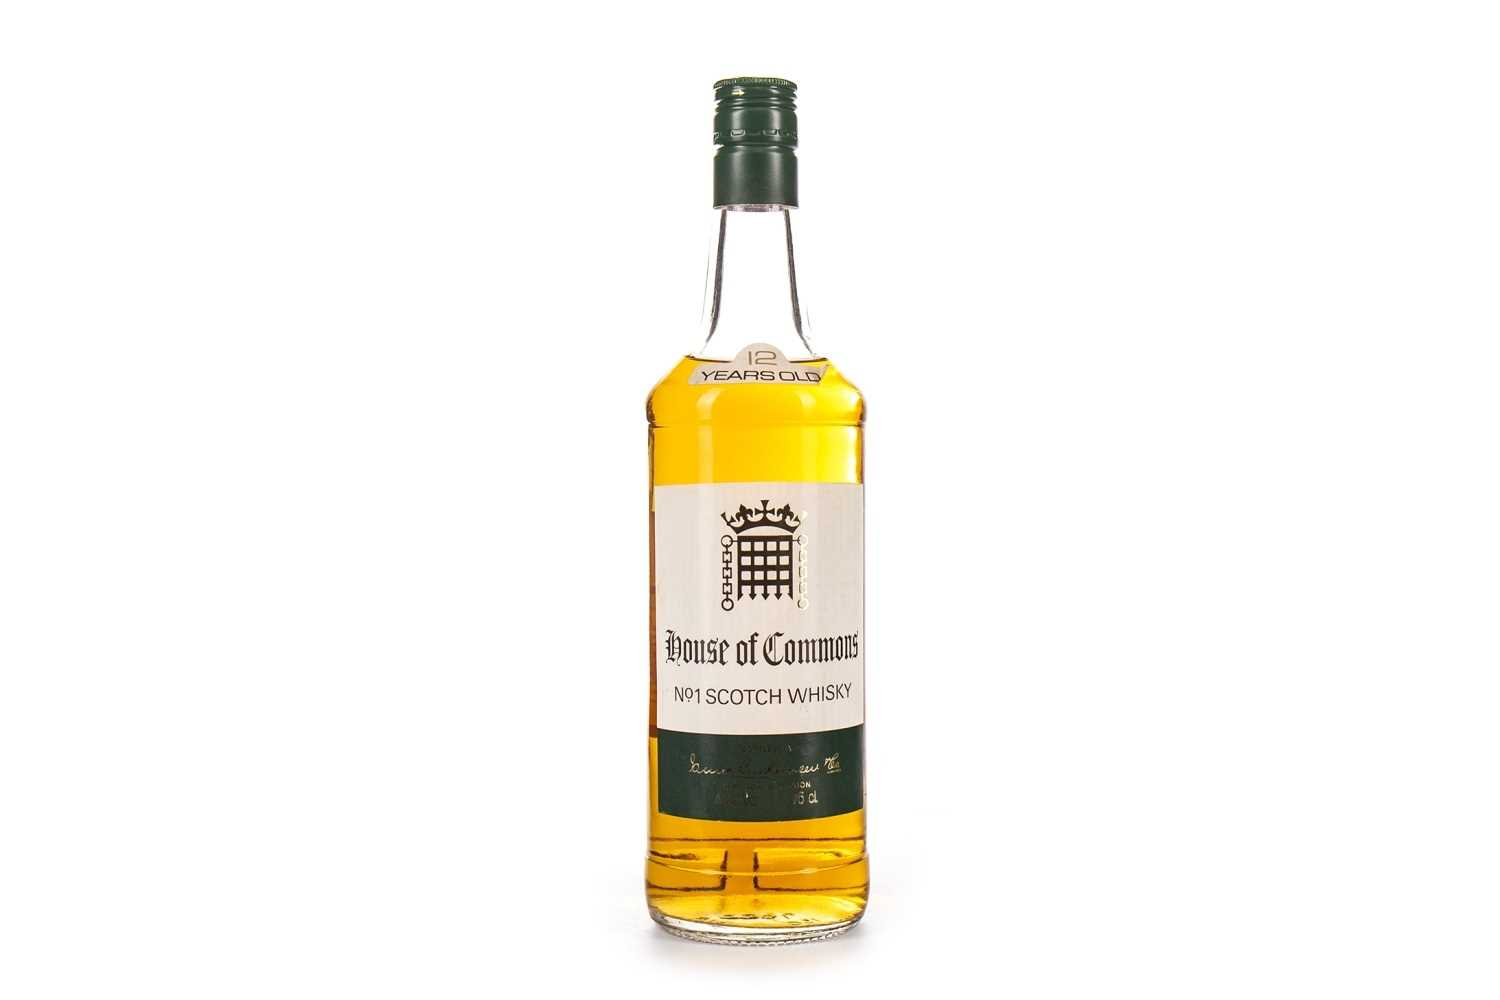 Lot 415-HOUSE OF COMMONS 12 YEARS OLD